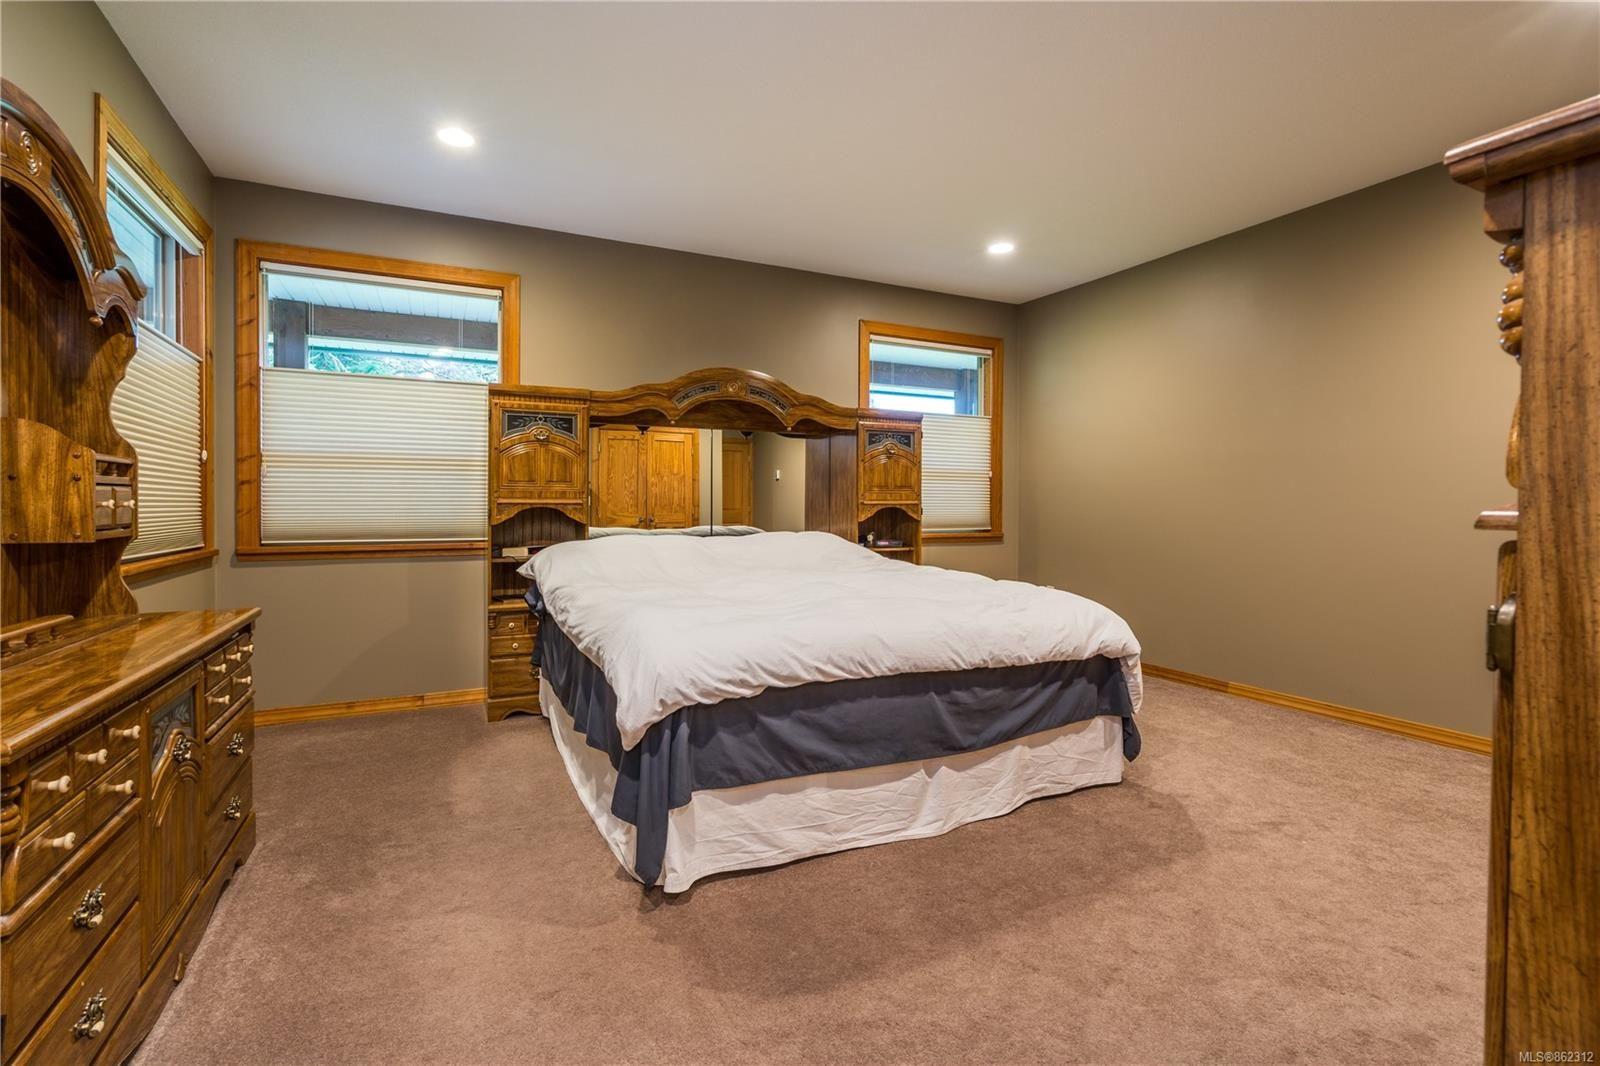 Photo 24: Photos: 7380 Plymouth Rd in : PA Alberni Valley House for sale (Port Alberni)  : MLS®# 862312